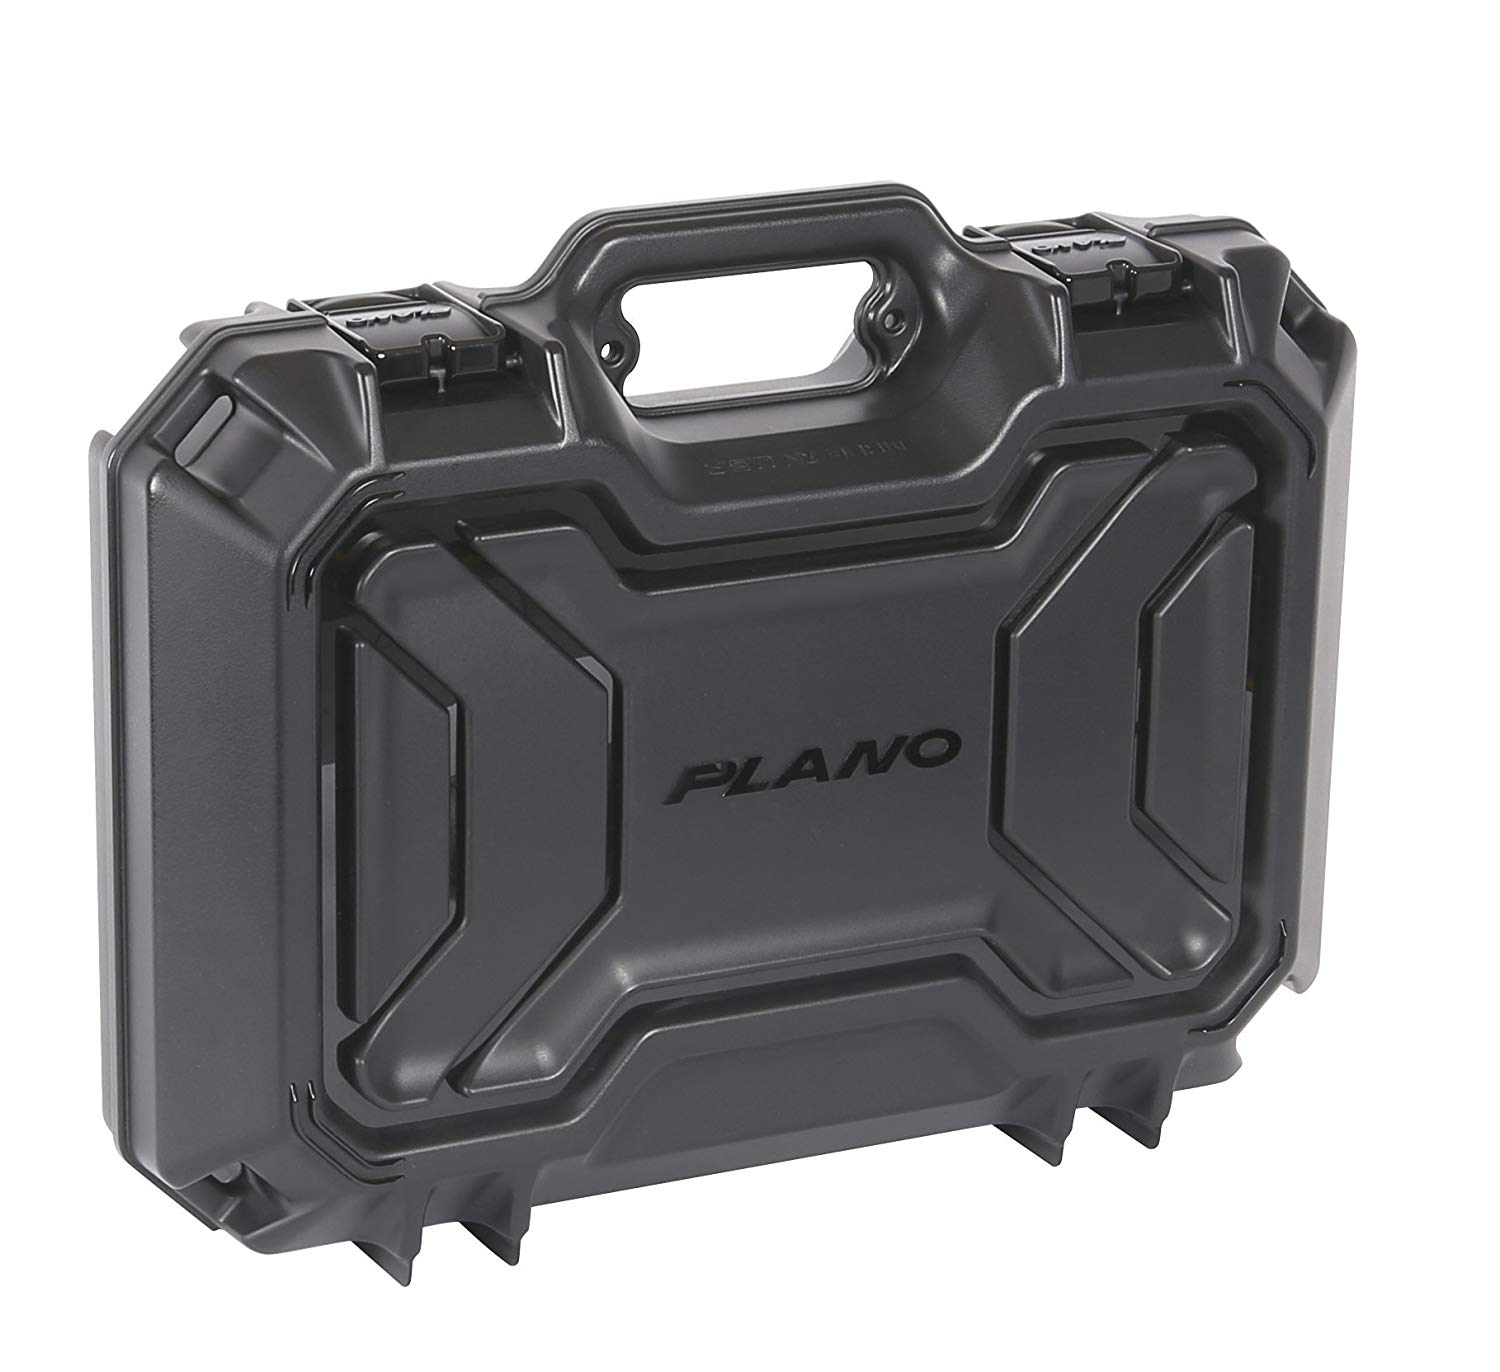 """Tactical Series Pistol Case, 18"""", Made Of Heavy Duty Material. Made in the USA By Plano"""